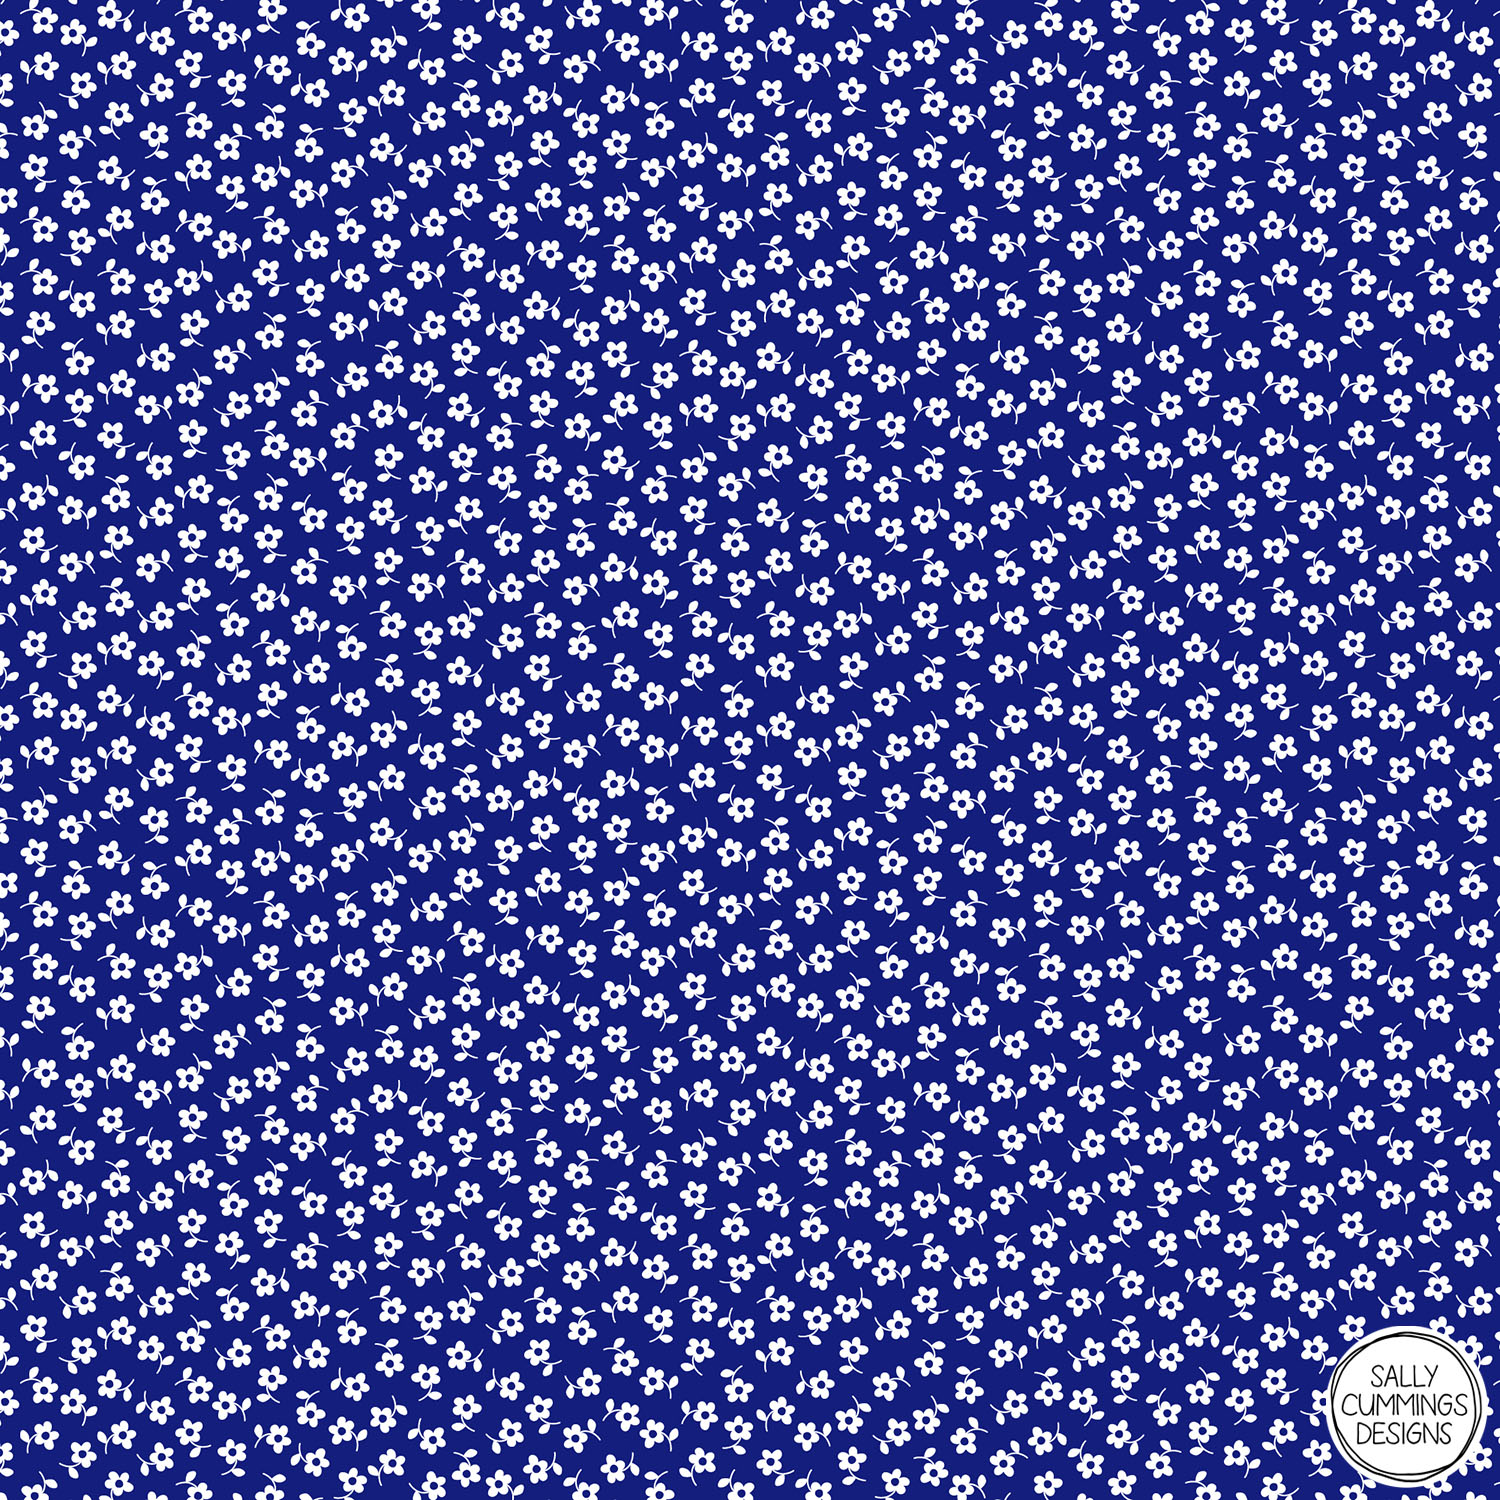 Sally Cummings Designs - Forget Me Nots Pattern (White on Blue)